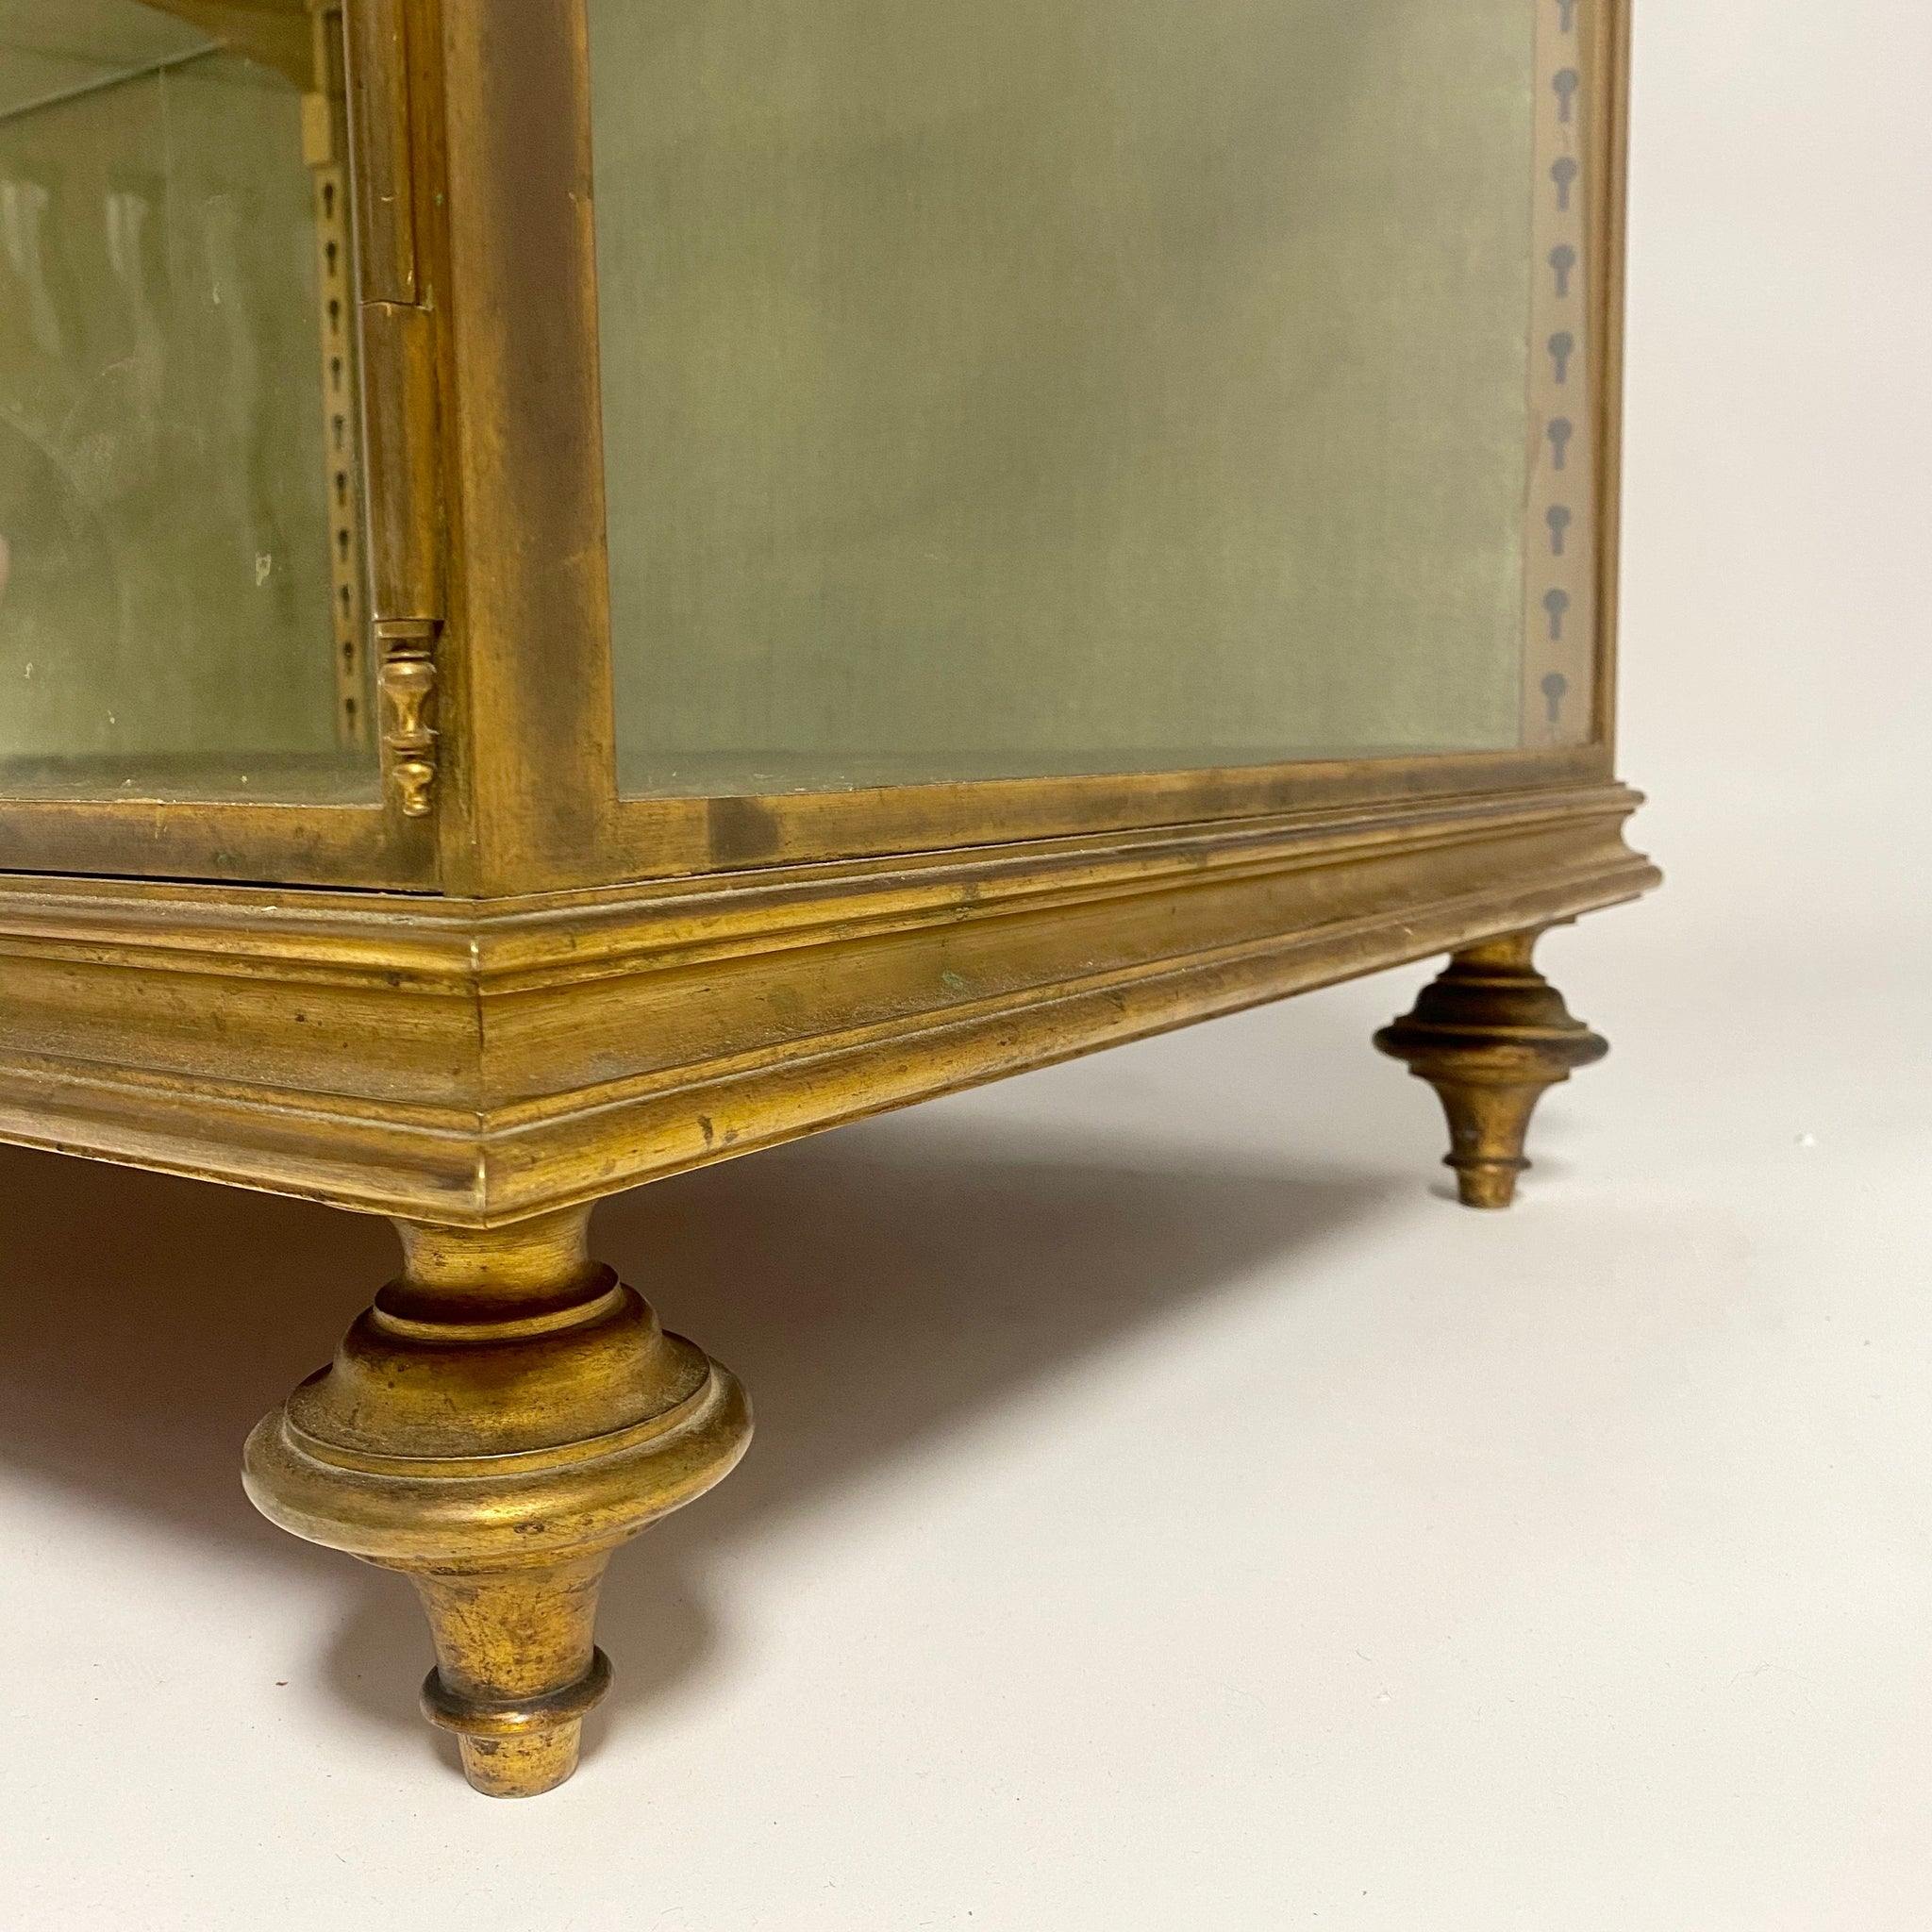 Fabulous French bronze vitrine with glazed hinge top circa 1900.